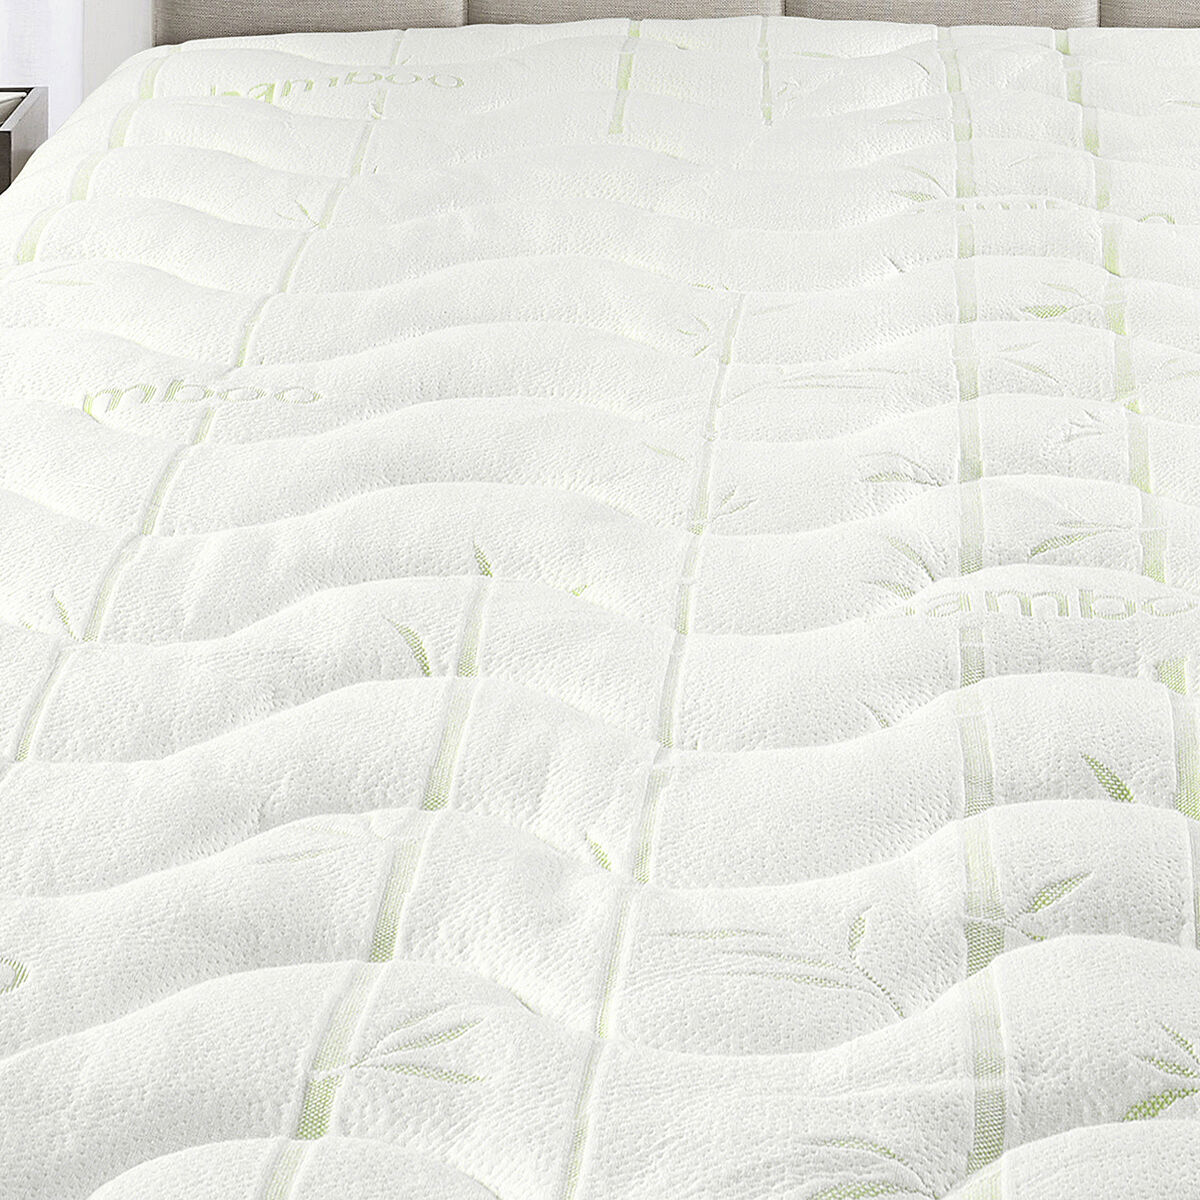 Waterproof Bamboo Jacquard Mattress Pad-Super Soft & Cool To The Touch